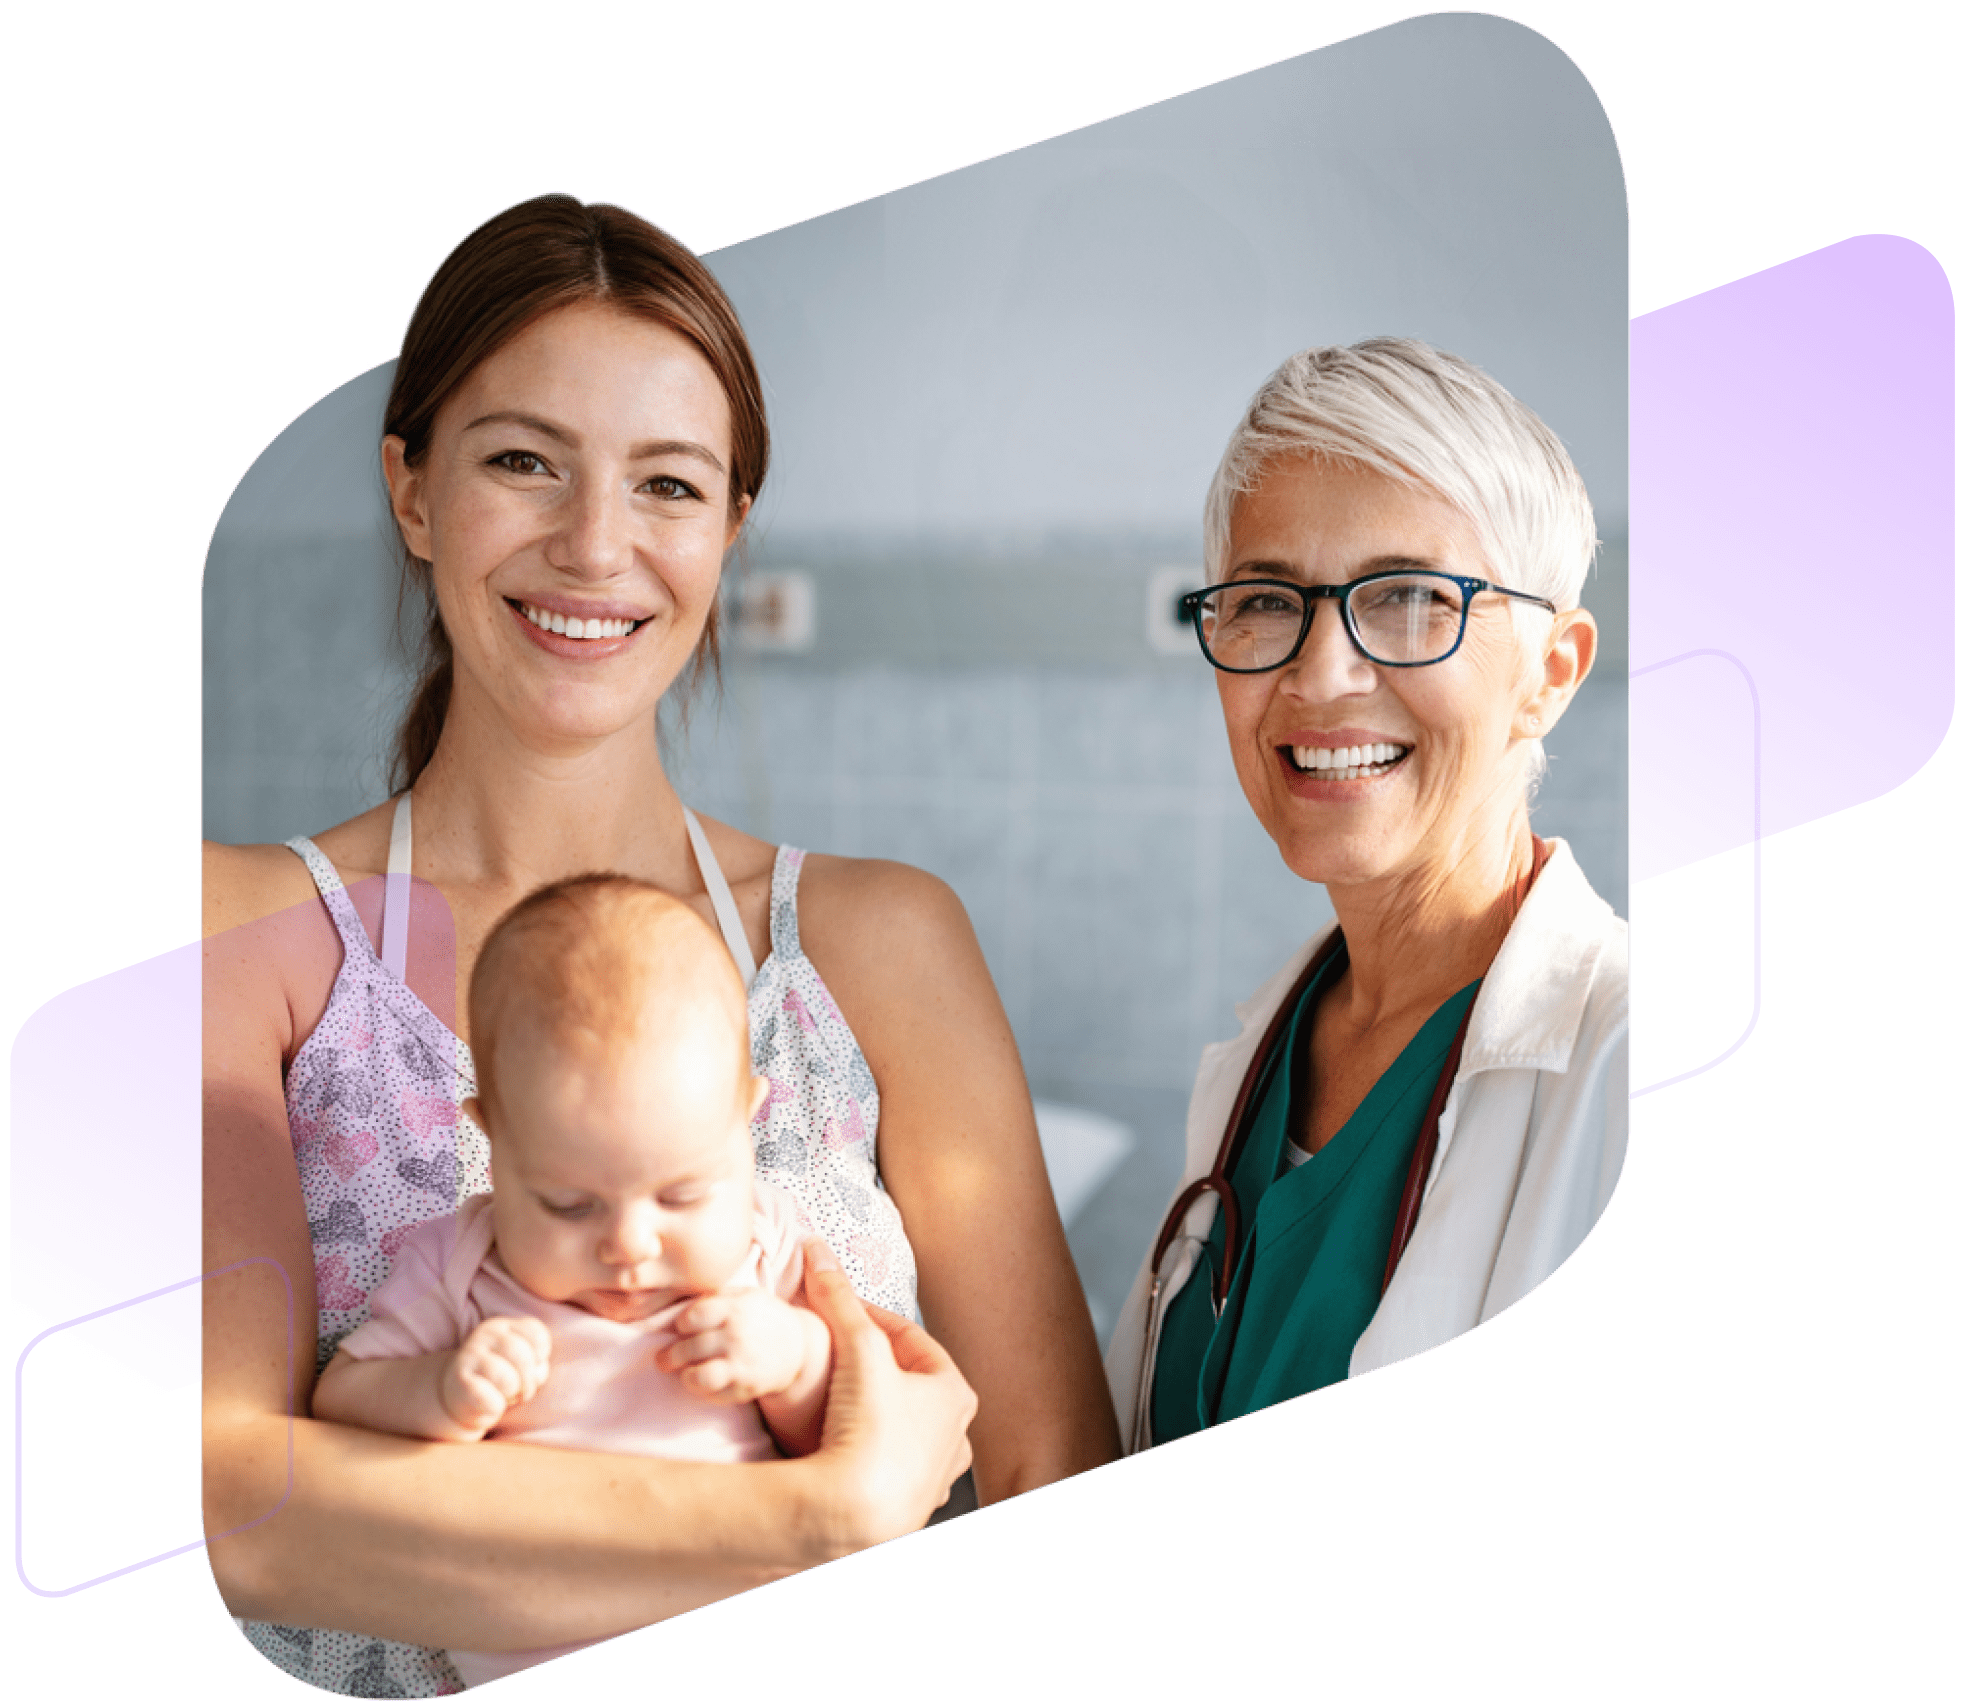 Woman with baby and doctor